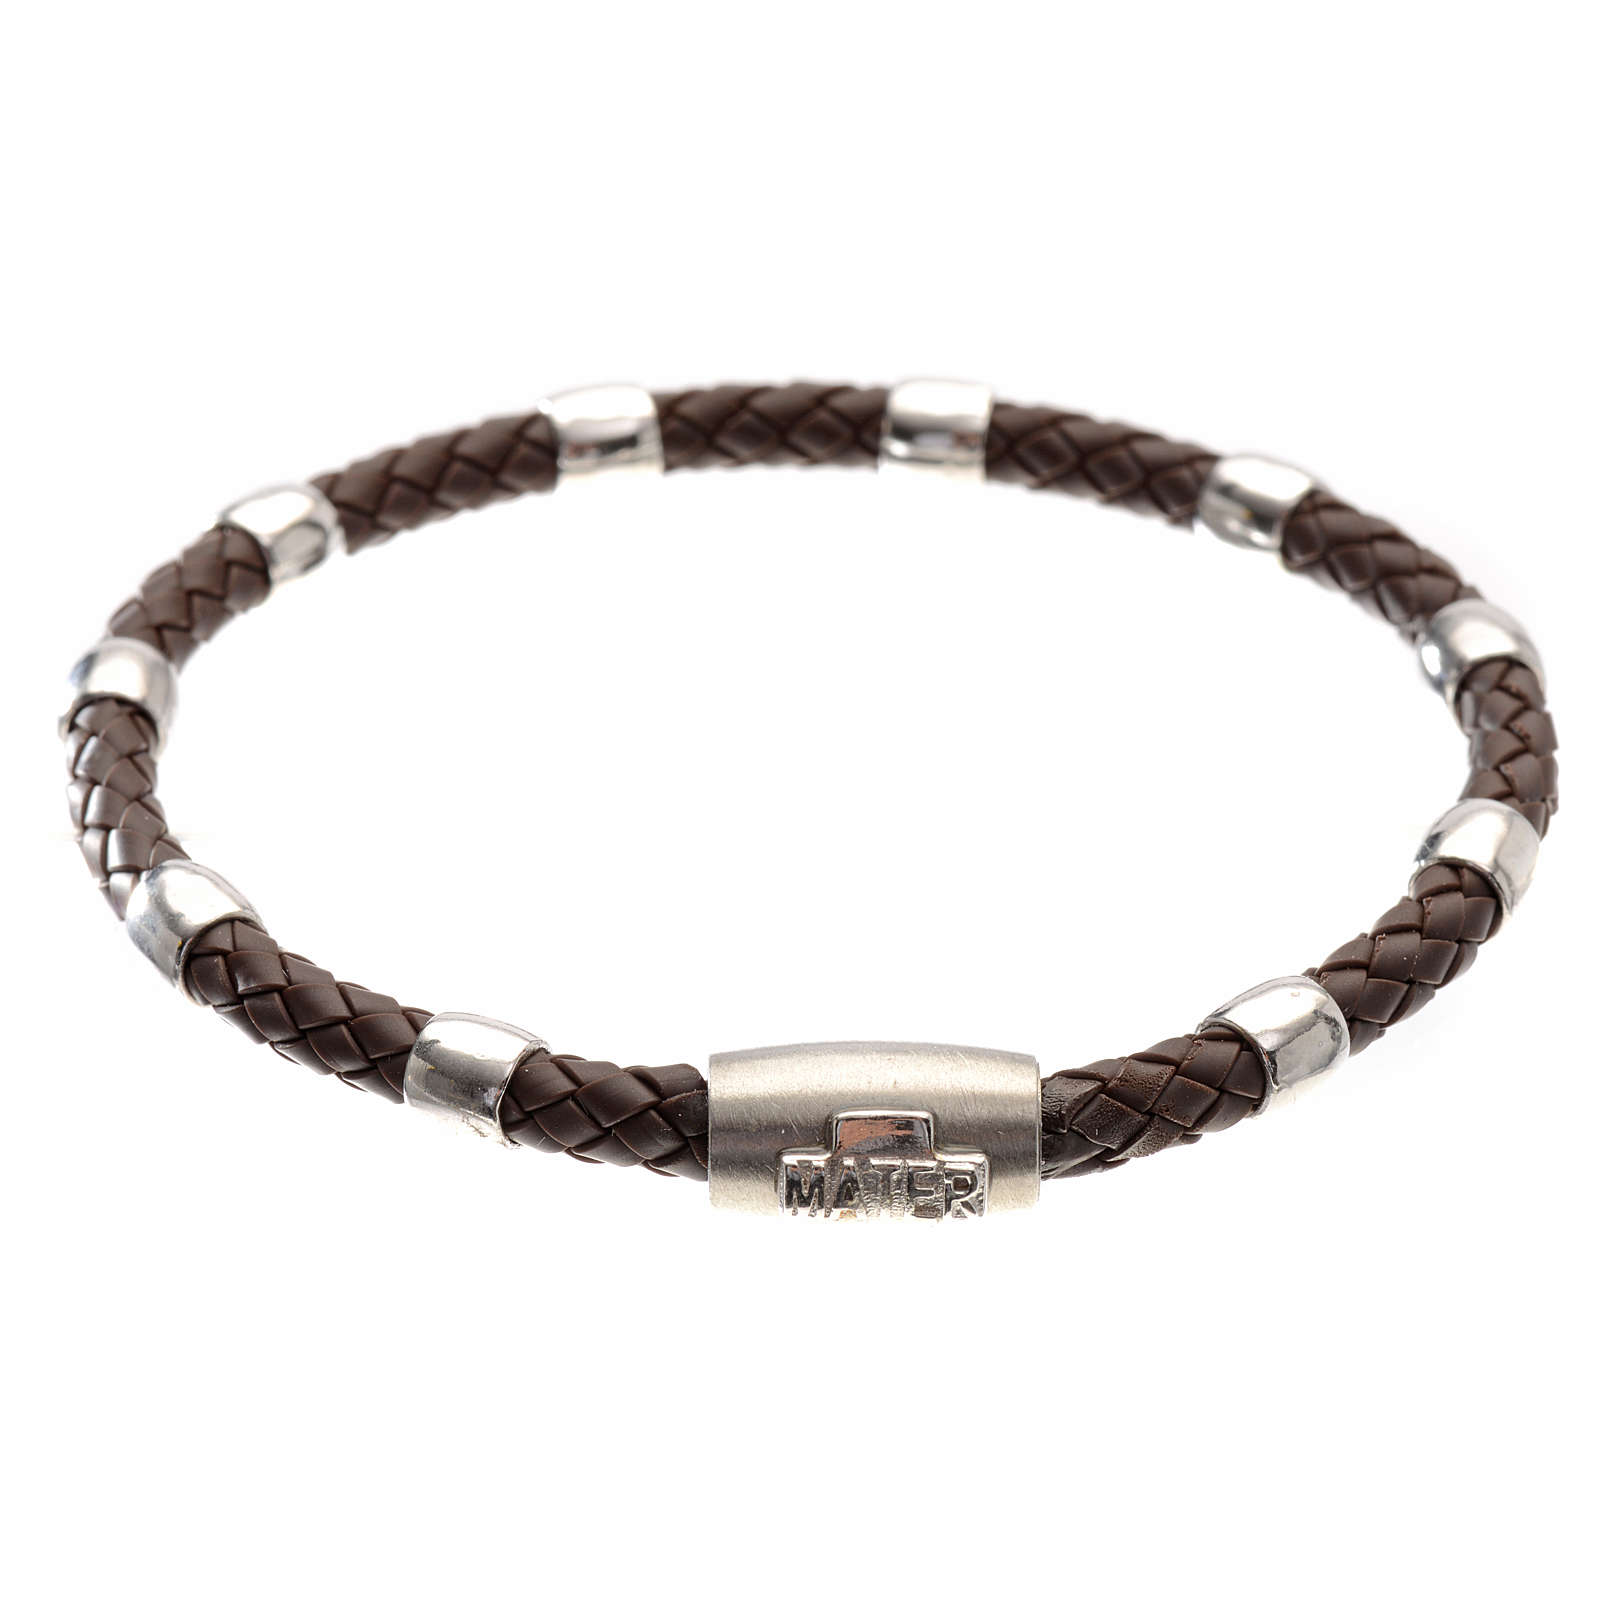 One decade bracelet in silver and brown leather, MATER jewels 4